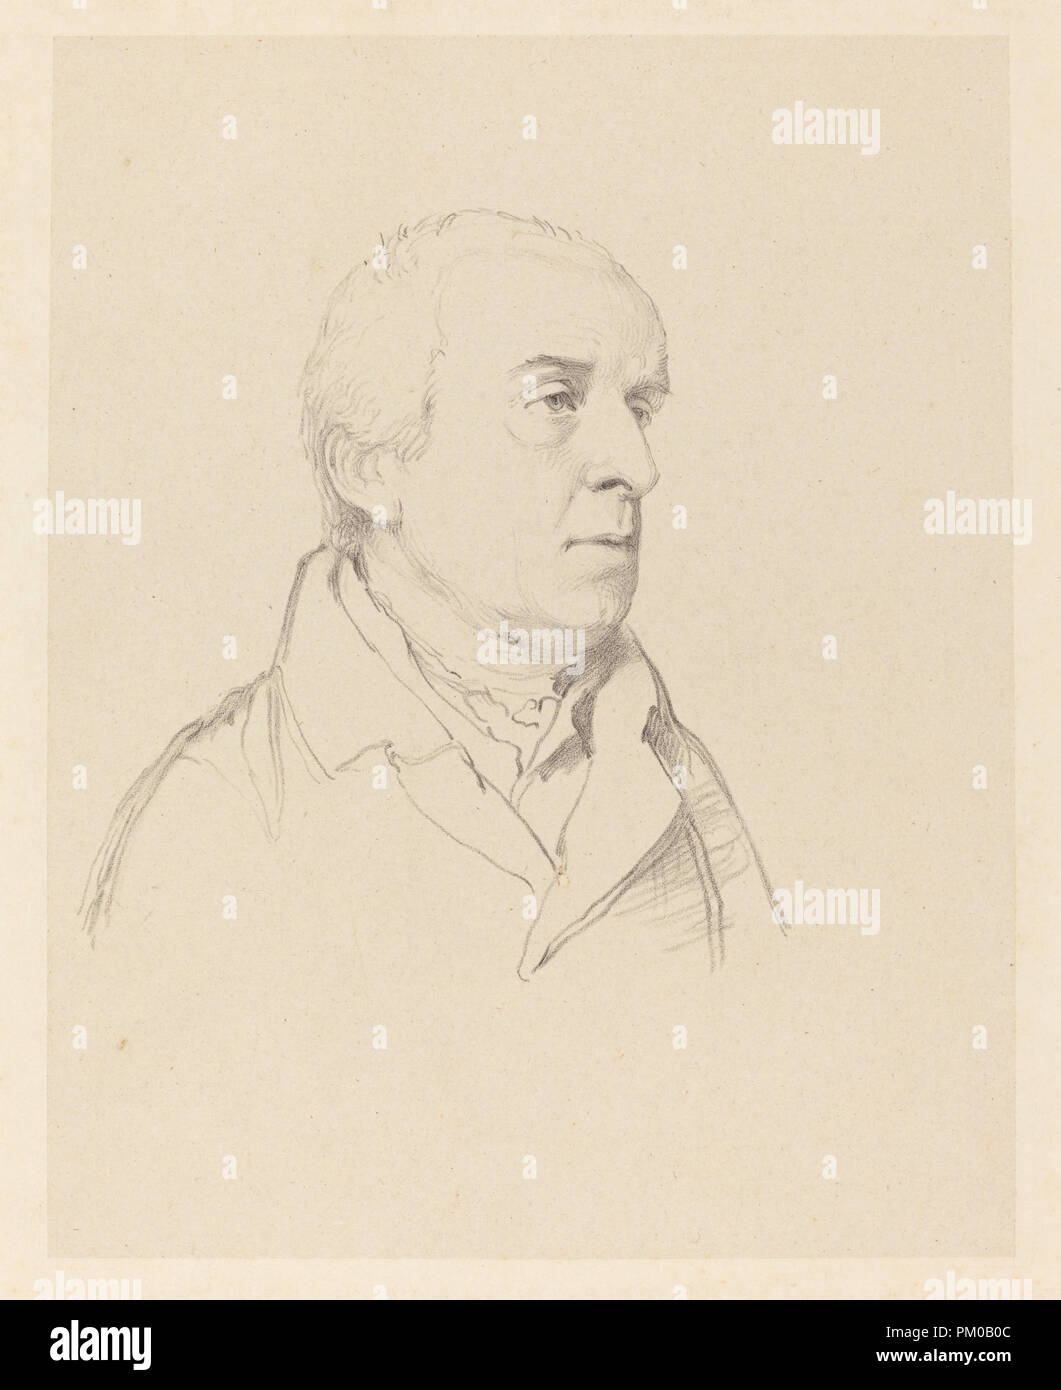 William Gunn. Medium: lithograph on papier colle. Museum: National Gallery of Art, Washington DC. Author: Richard James Lane after John Flaxman. - Stock Image